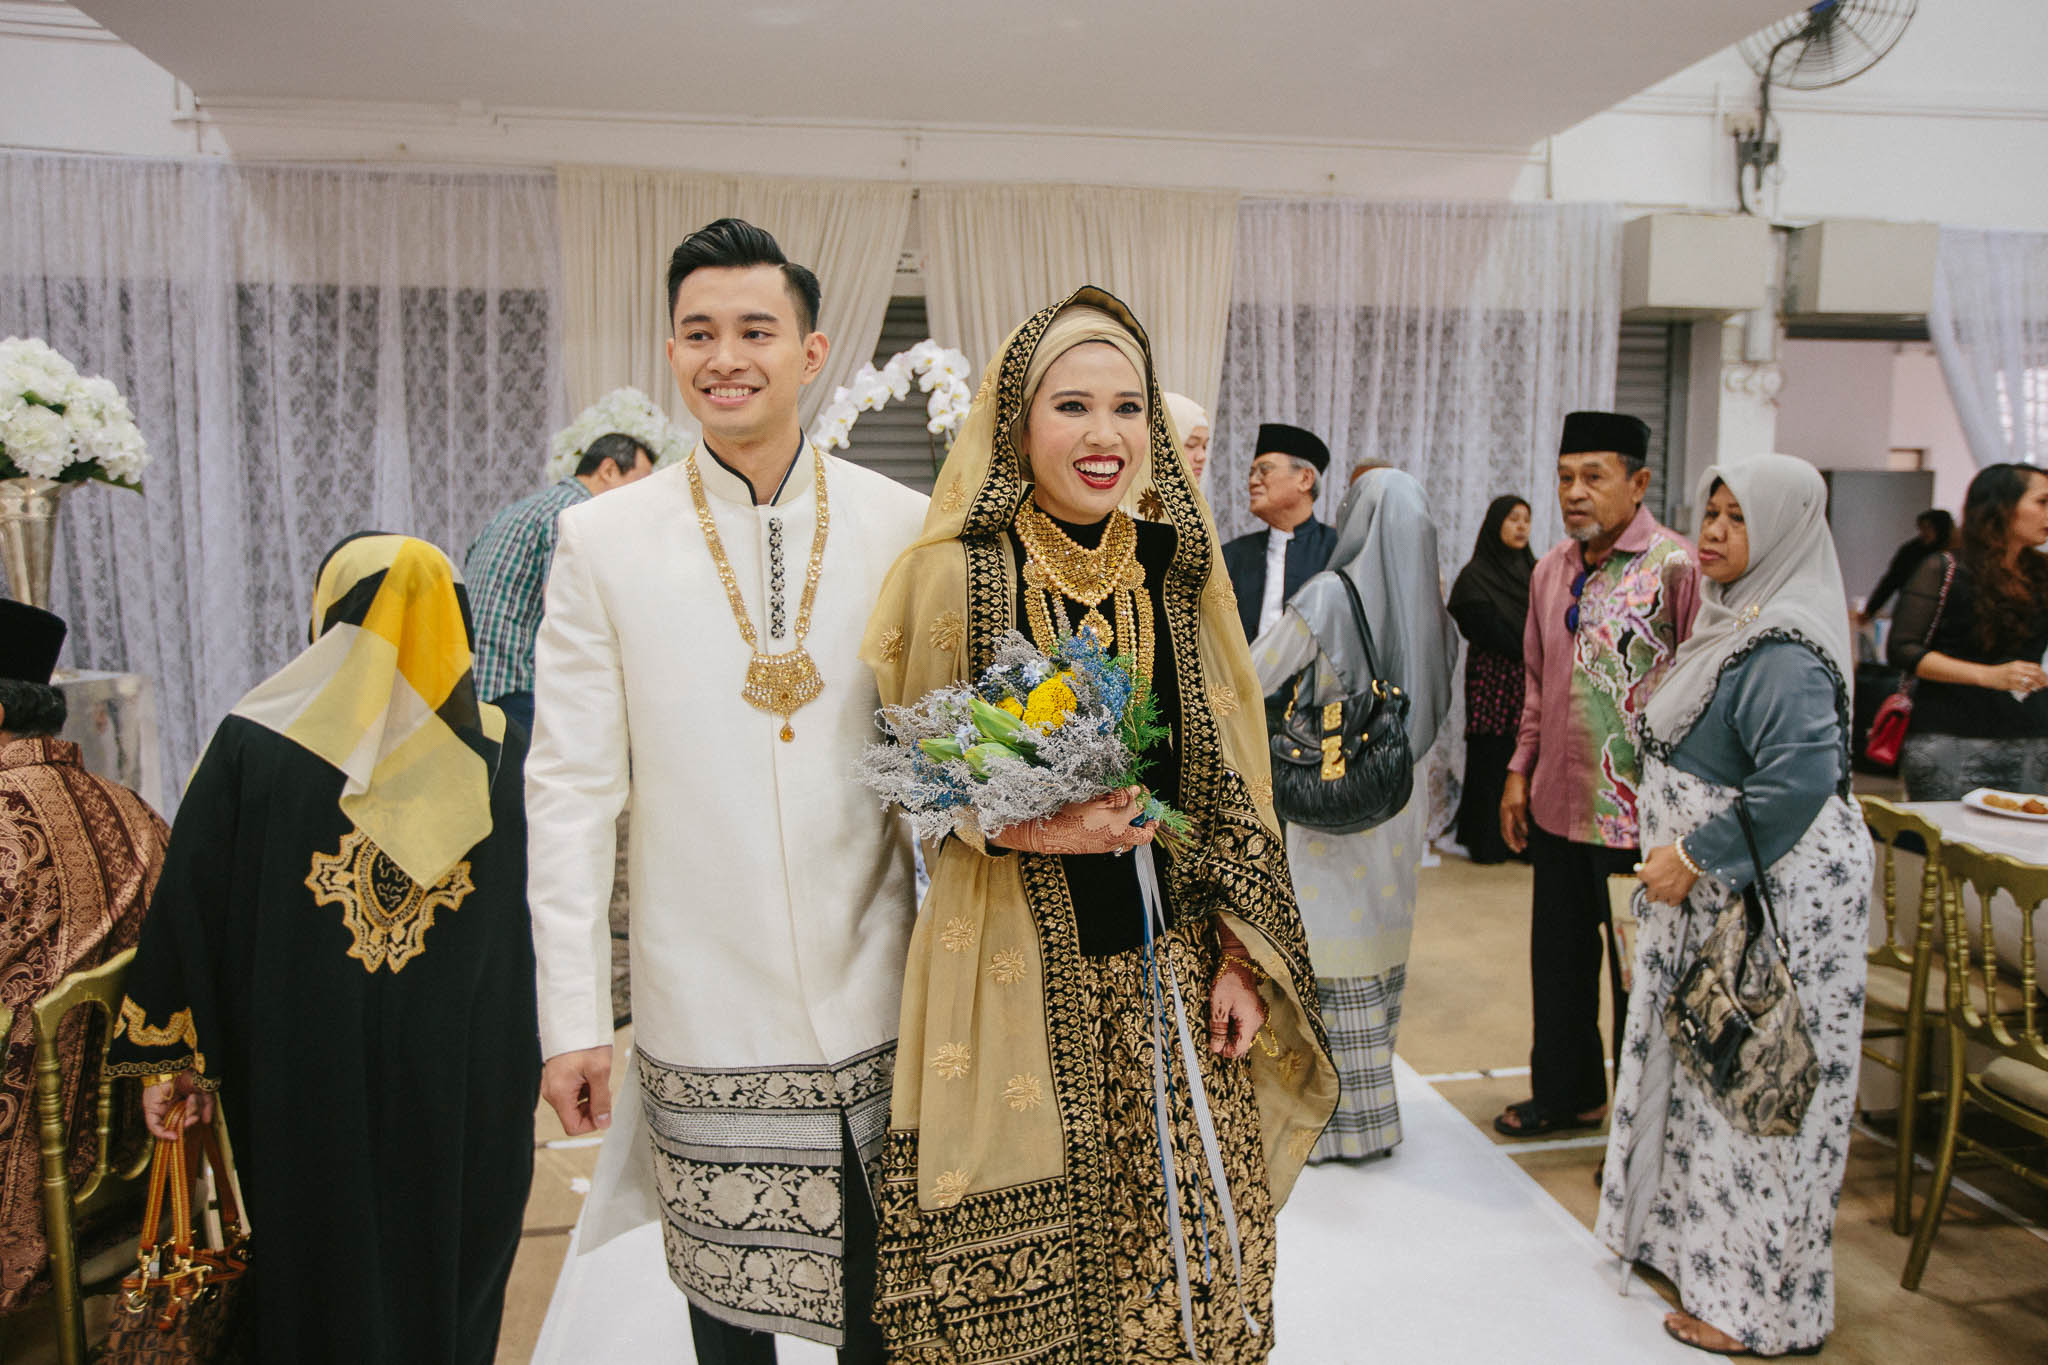 singapore-wedding-photographer-mega-asyraf-50.jpg